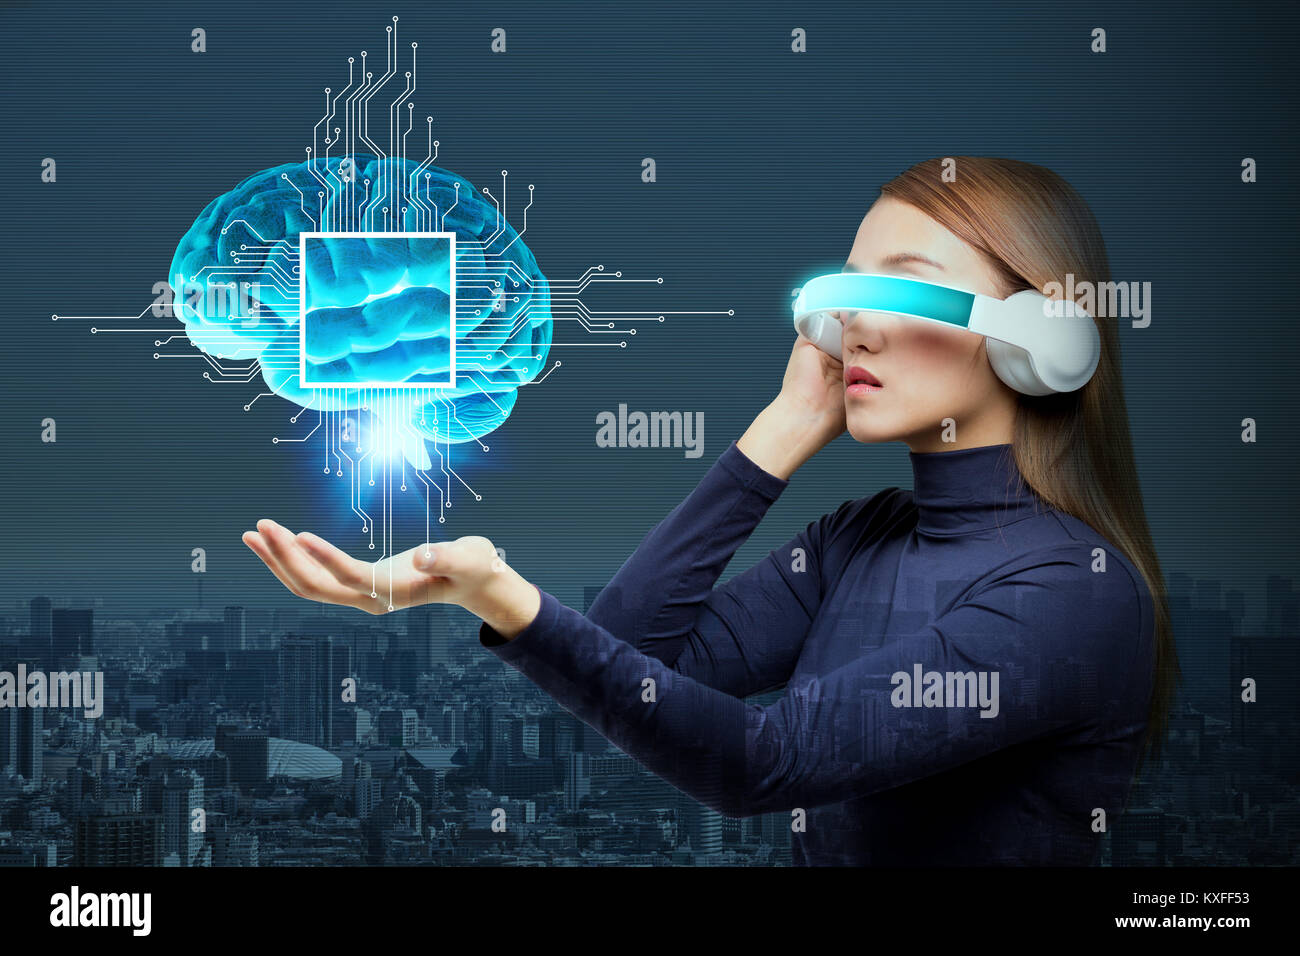 AI(Artificial Intelligence) concept, 3D rendering, abstract image visual - Stock Image